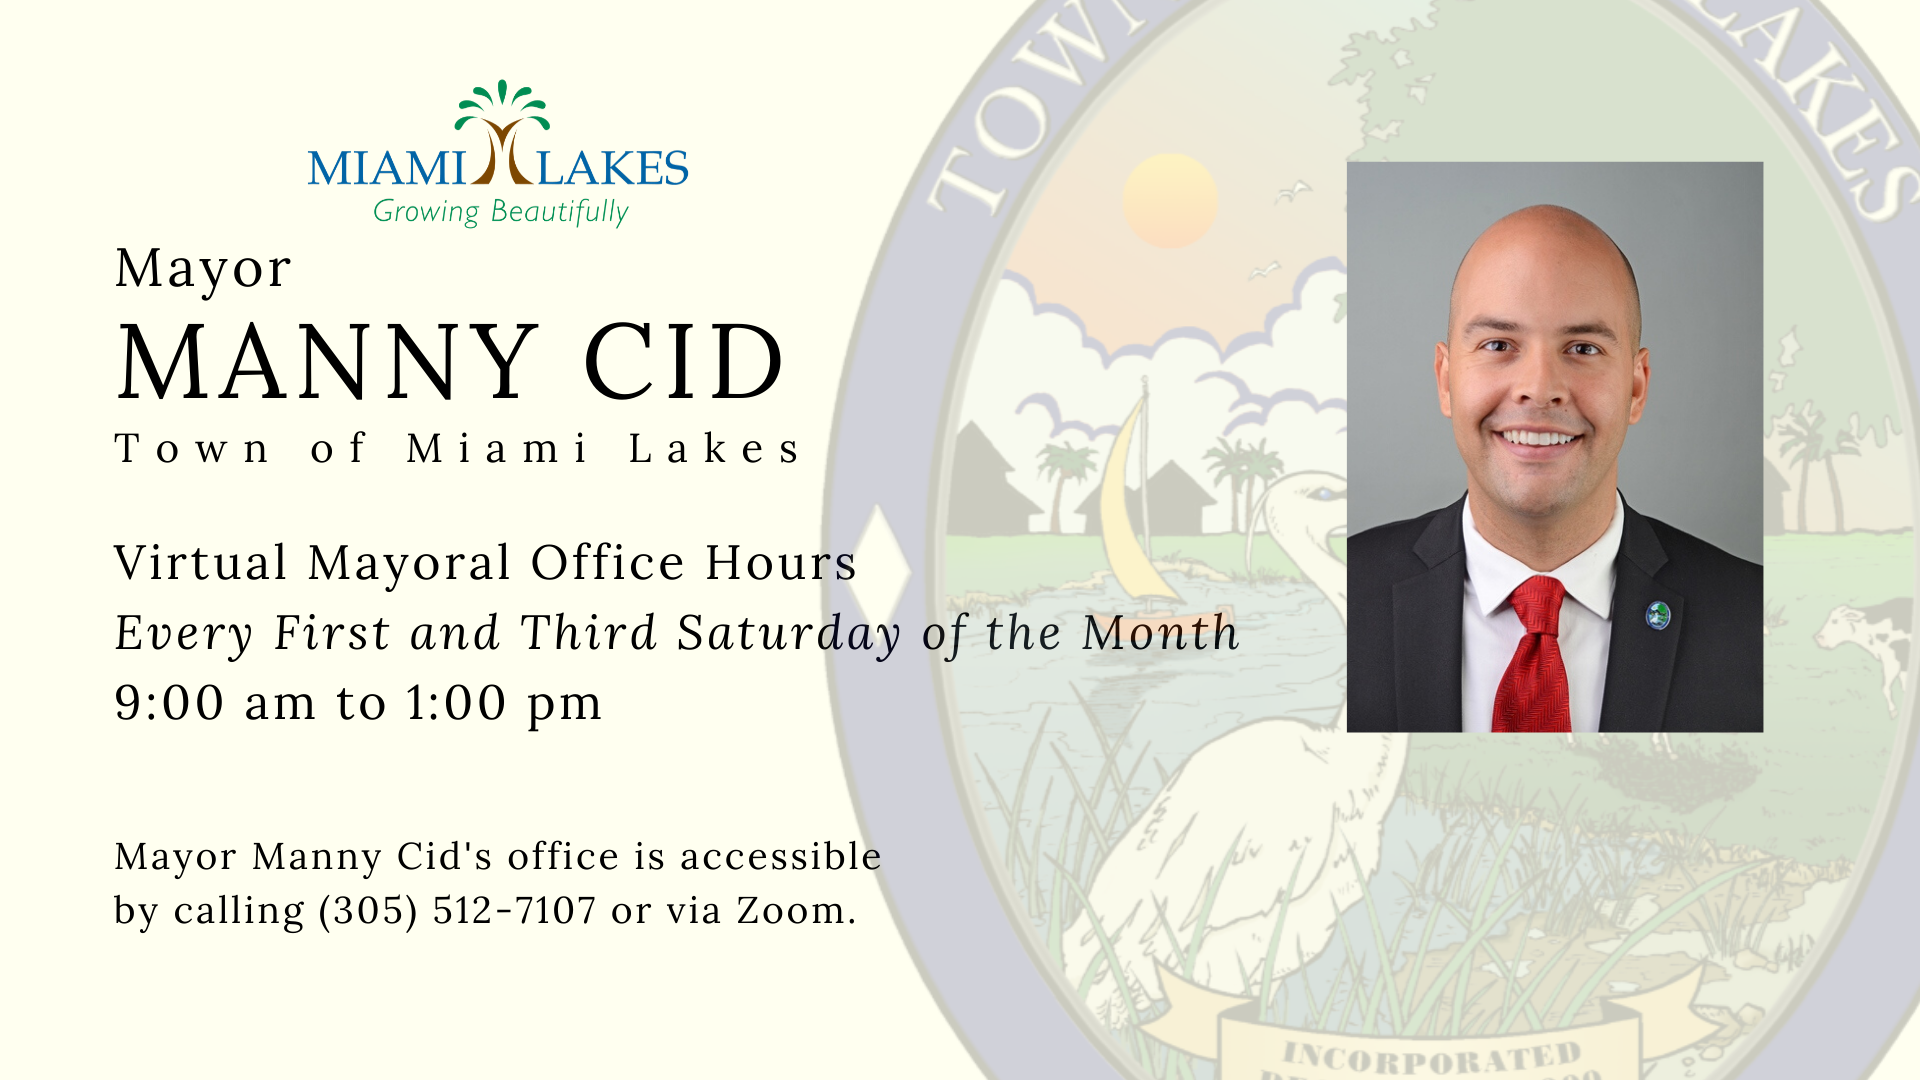 Virtual Mayoral Office Hours